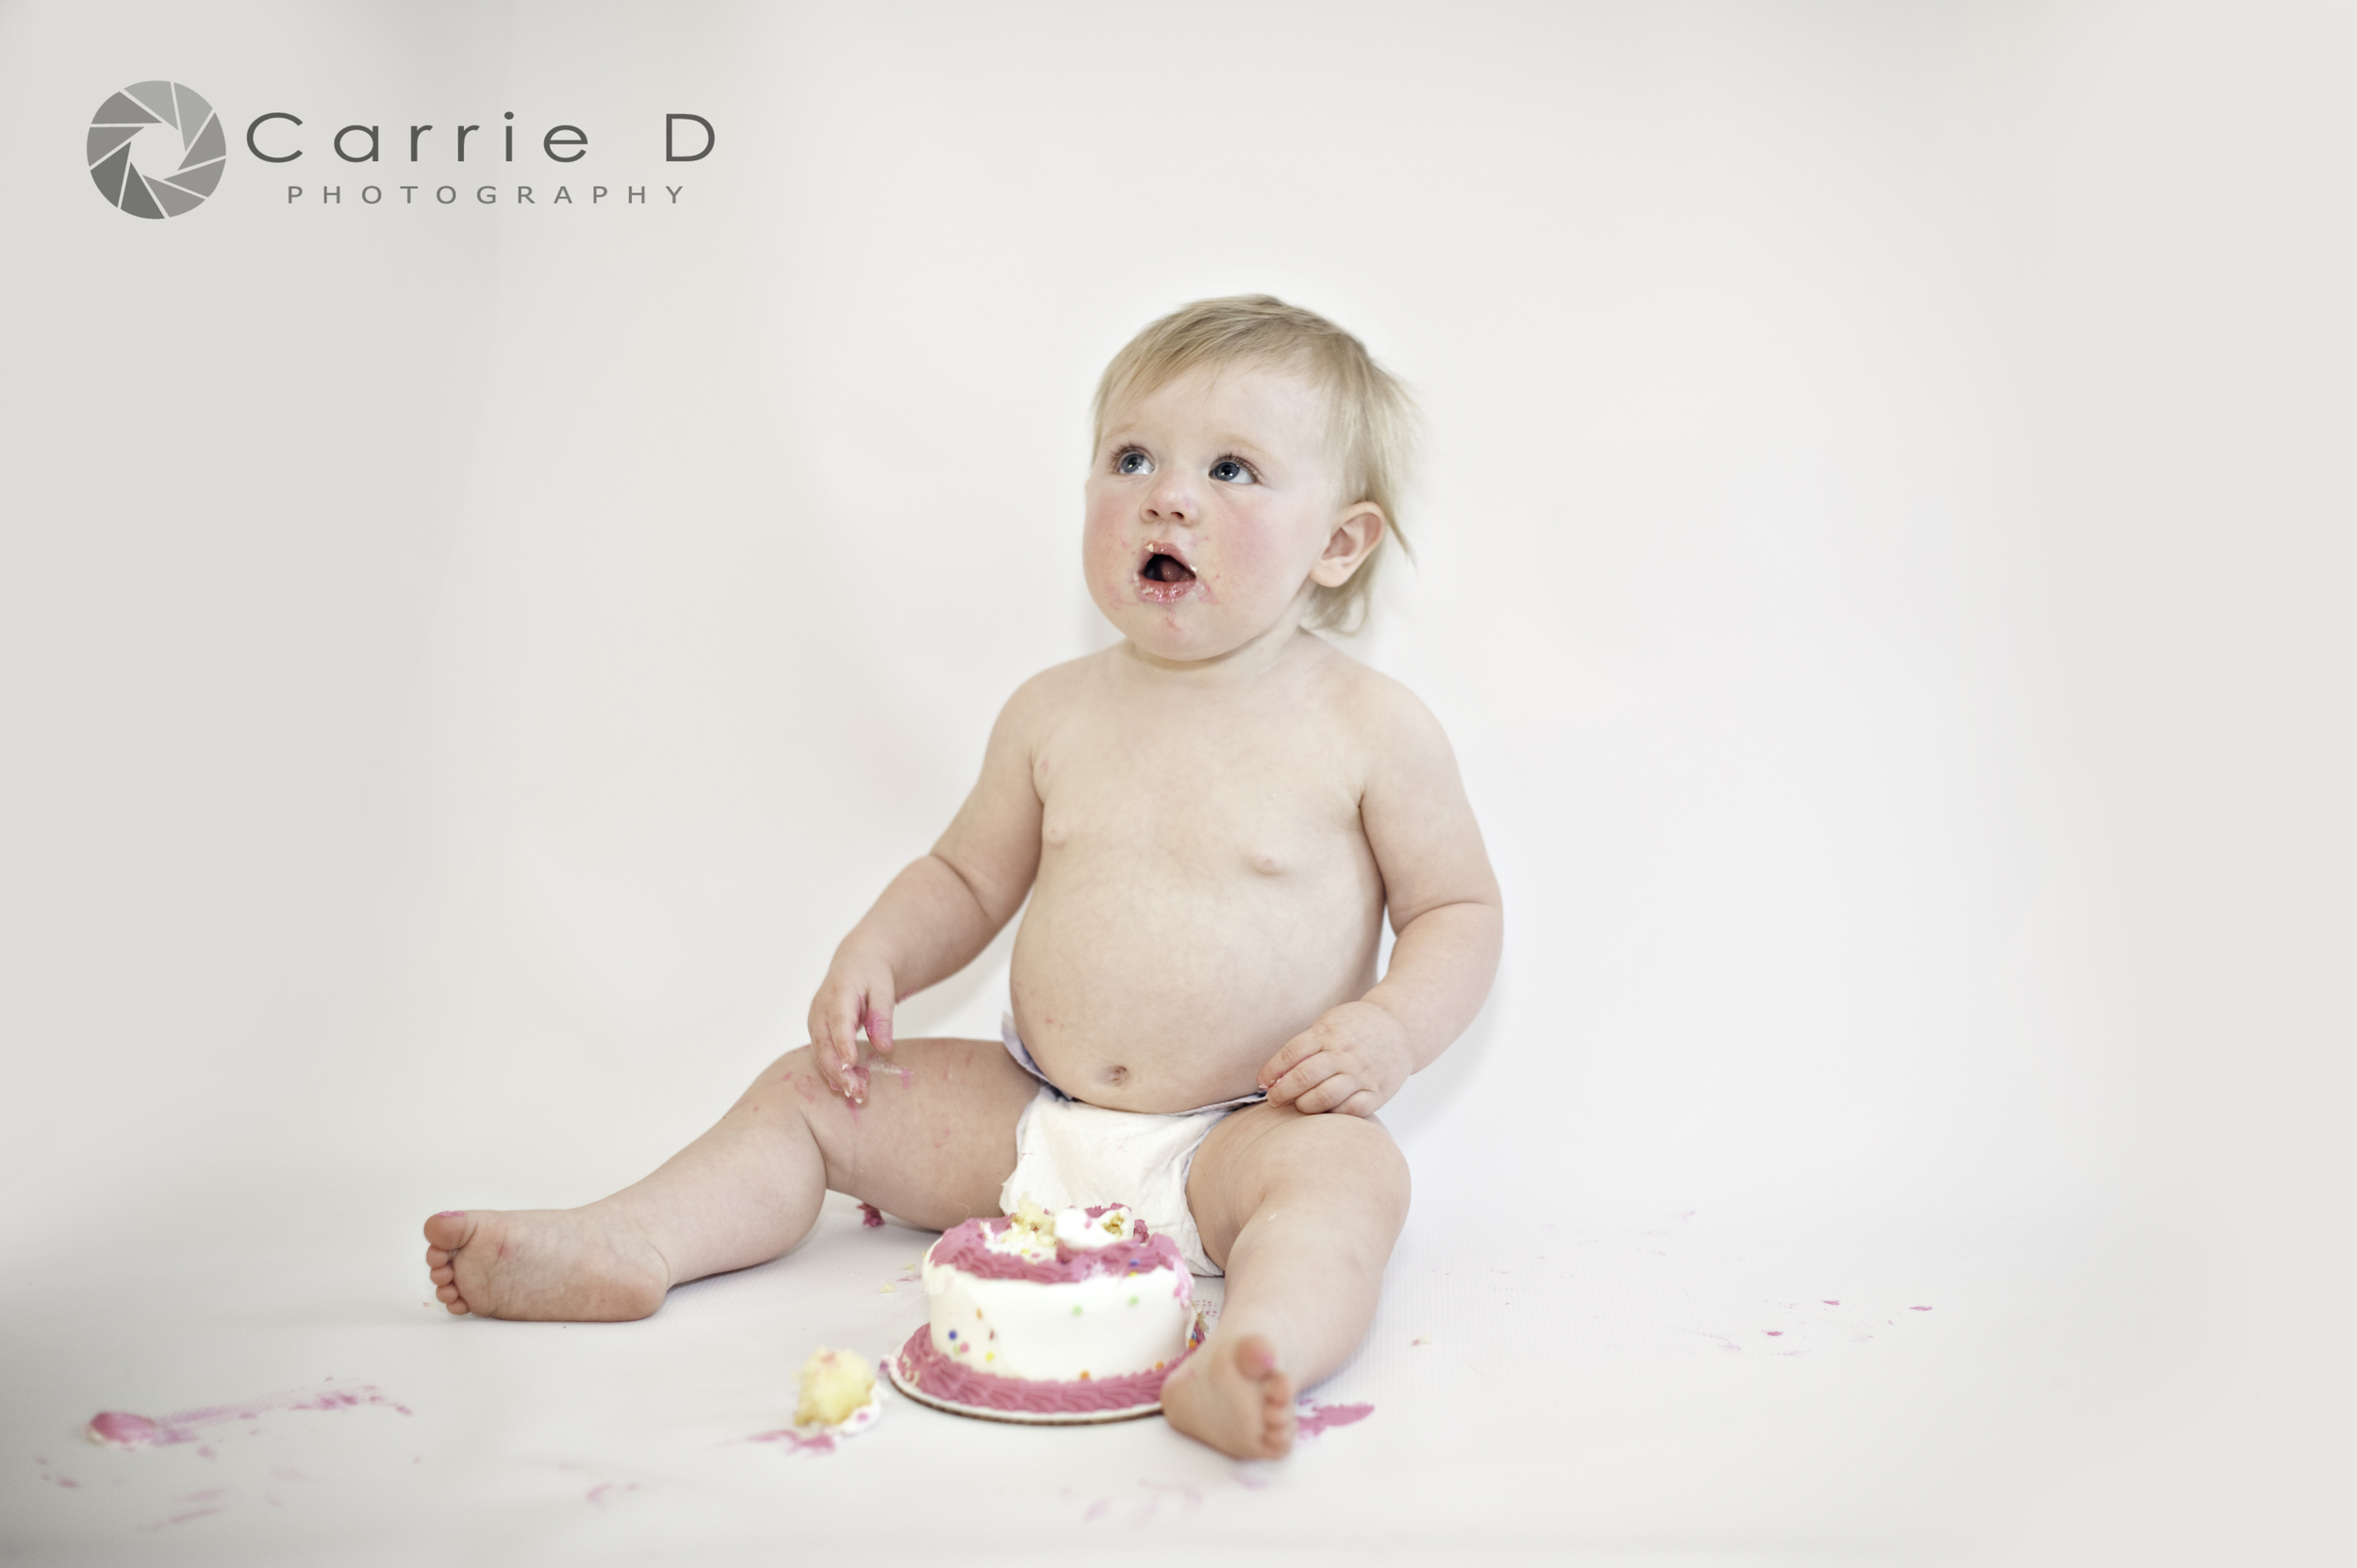 Baltimore Photographer – Baltimore Portrait Photographer – Baltimore Infant Photographer - Baltimore Newborn Photographer – Baltimore Family Photographer – Baltimore Milestone Photographer – Baltimore Cake Smash Photographer -  Baltimore Natural Light Photographer – Baltimore Lifestyle Photographer – Baltimore Natural Light Portrait - Maryland Photographer – Maryland Portrait Photographer – Maryland Family Photographer - Maryland Newborn Photographer – Maryland Infant Photographer – Maryland Milestone Photographer – Maryland Cake Smash Photographer - Maryland Natural Light Photographer – Maryland Lifestyle Photographer – Maryland Natural Light Portrait - Riley Cake_DSC_0192B